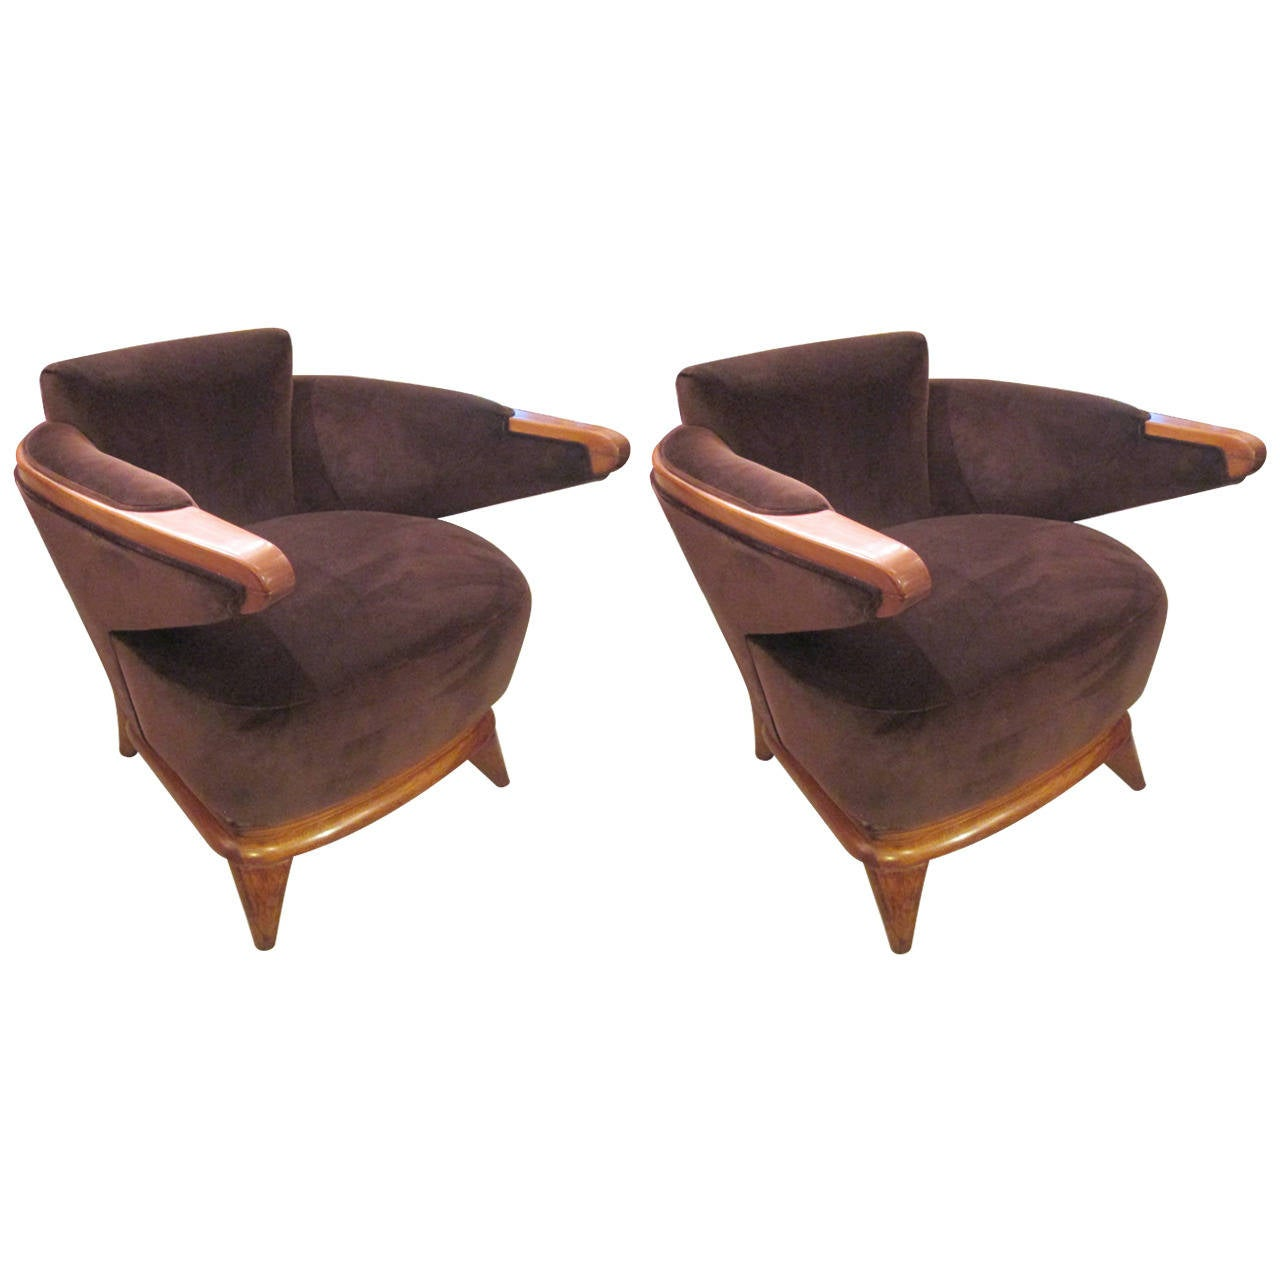 Pair of Sculptural Mid-Century Lounge Chairs with Cantilevered Arms For Sale